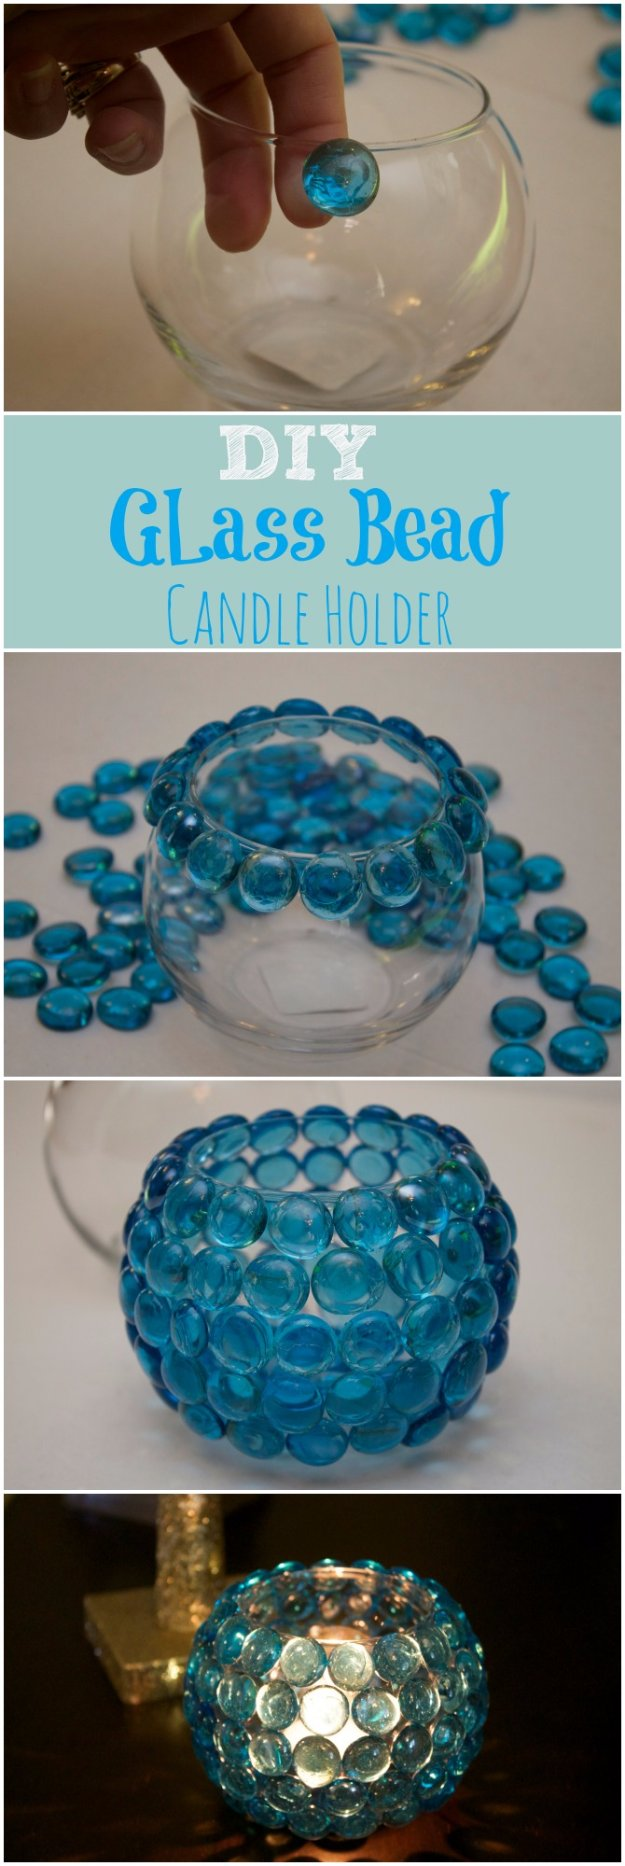 Easy Crafts To Make and Sell - DIY Glass Bead Vase - Cool Homemade Craft Projects You Can Sell On Etsy, at Craft Fairs, Online and in Stores. Quick and Cheap DIY Ideas that Adults and Even Teens #craftstosell #diyideas #crafts